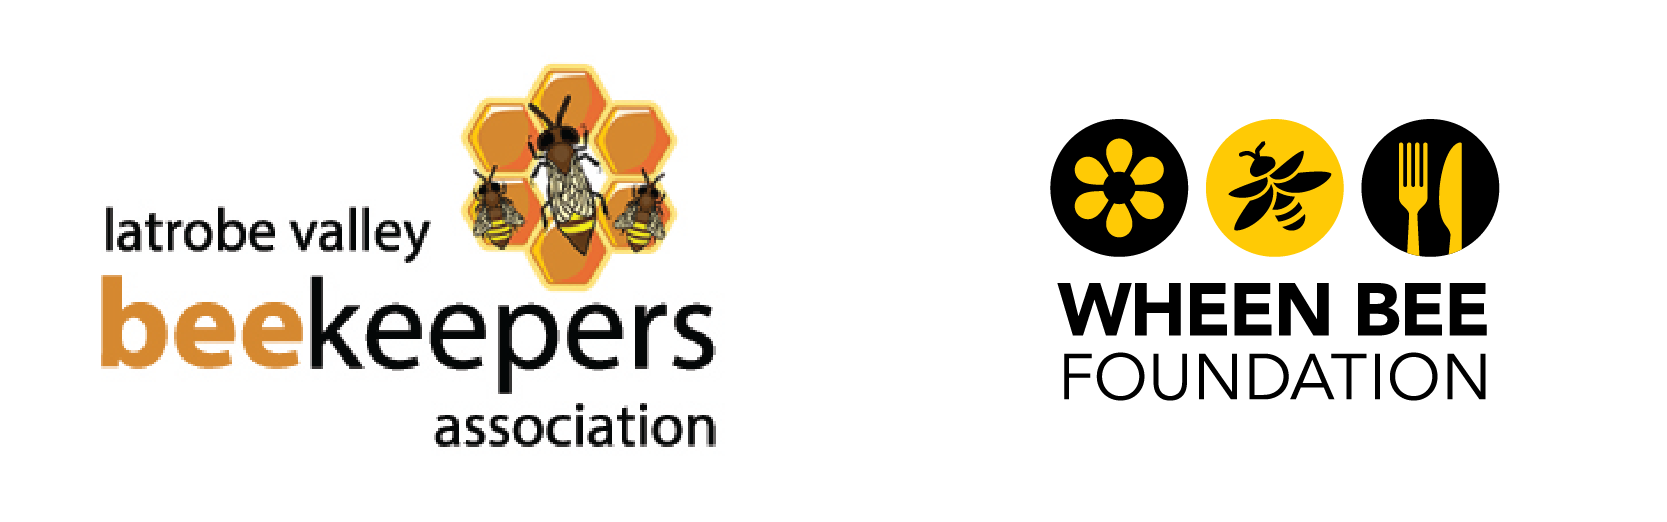 Wheen Bee Foundation and the Latrobe Valley Beekeepers Association Poster